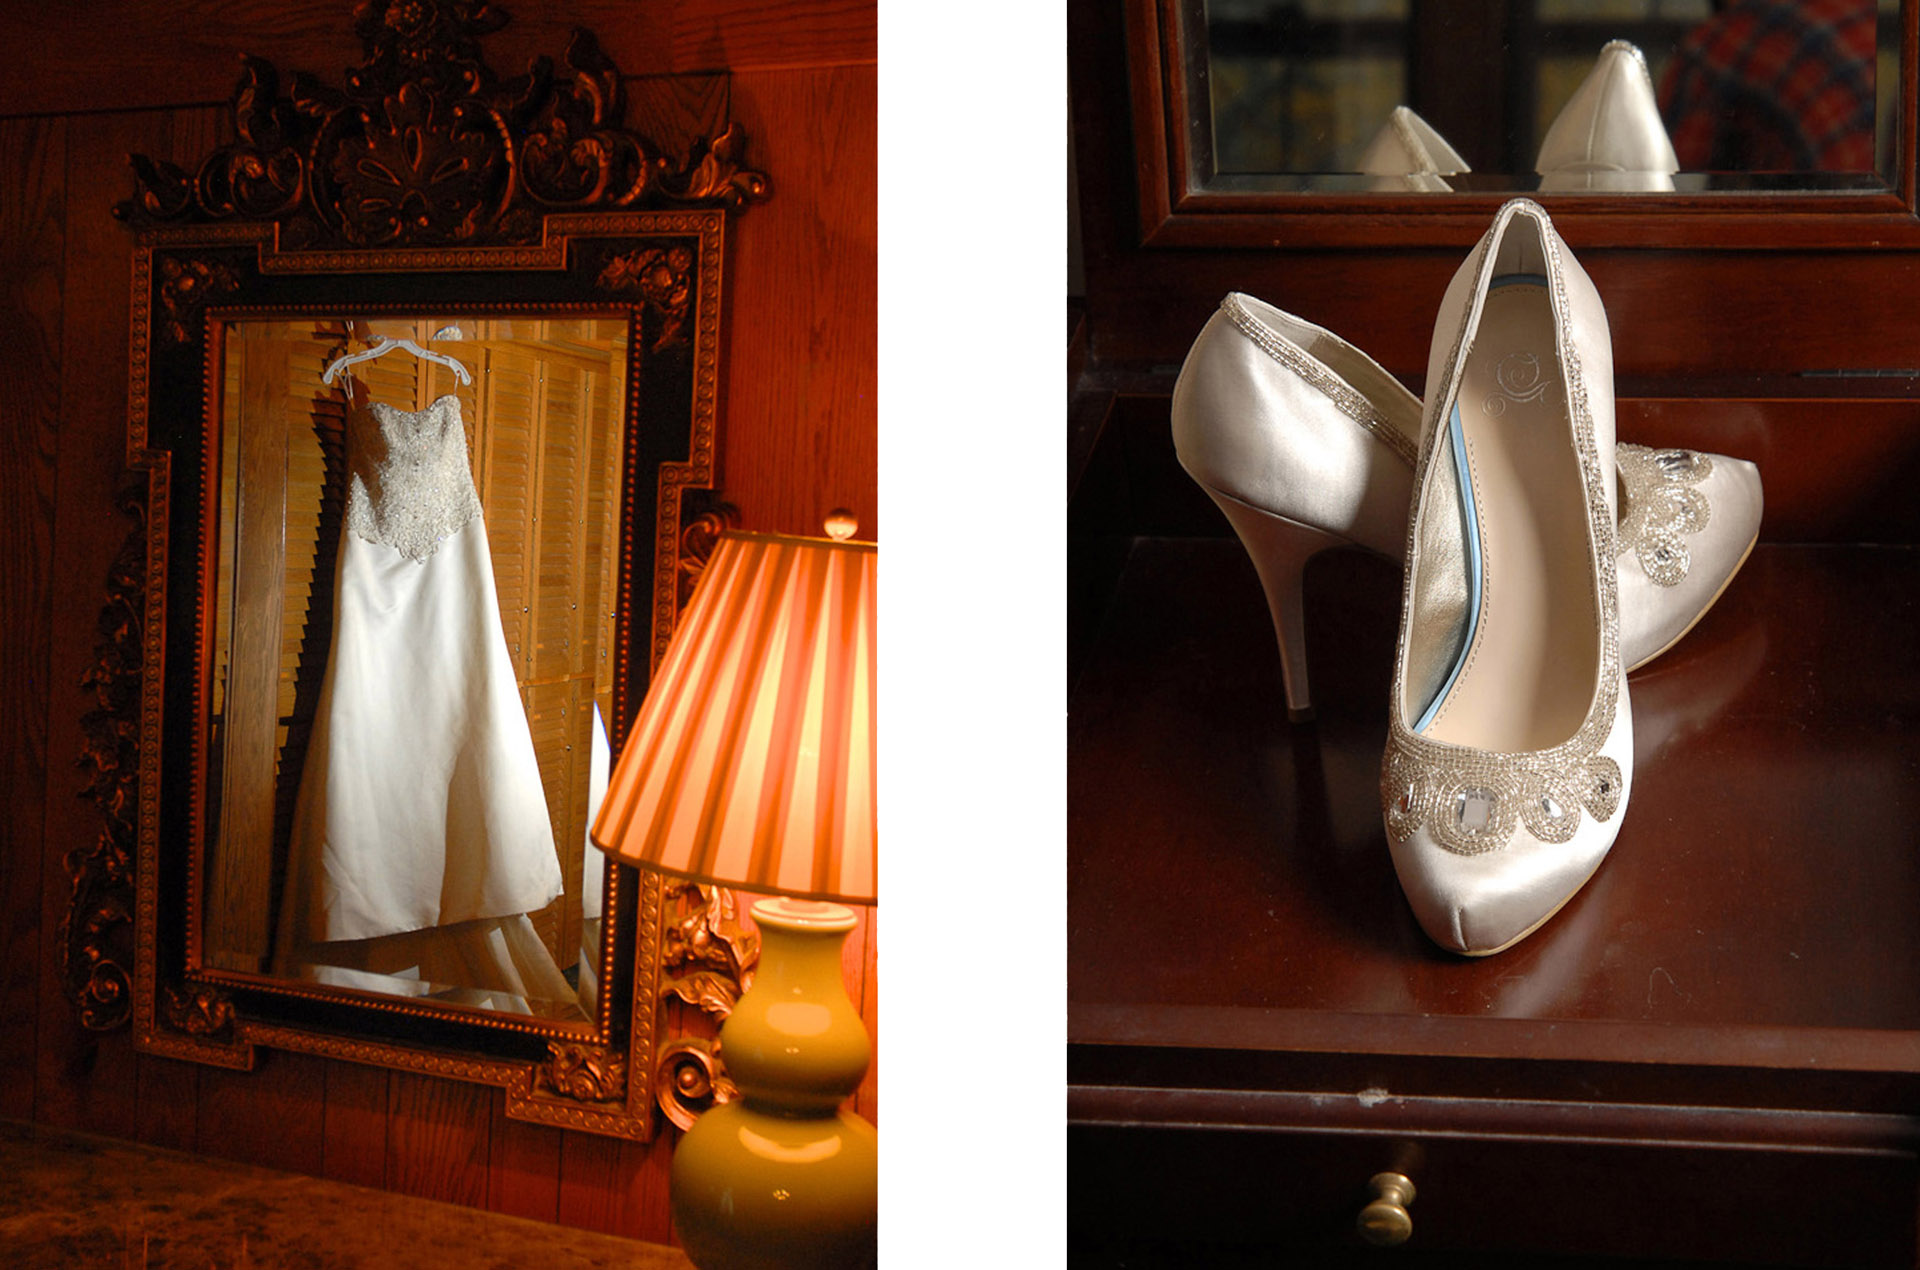 michigan wedding photographer photographs a wedding dress and wedding shoes as part of her wedding day coverage.